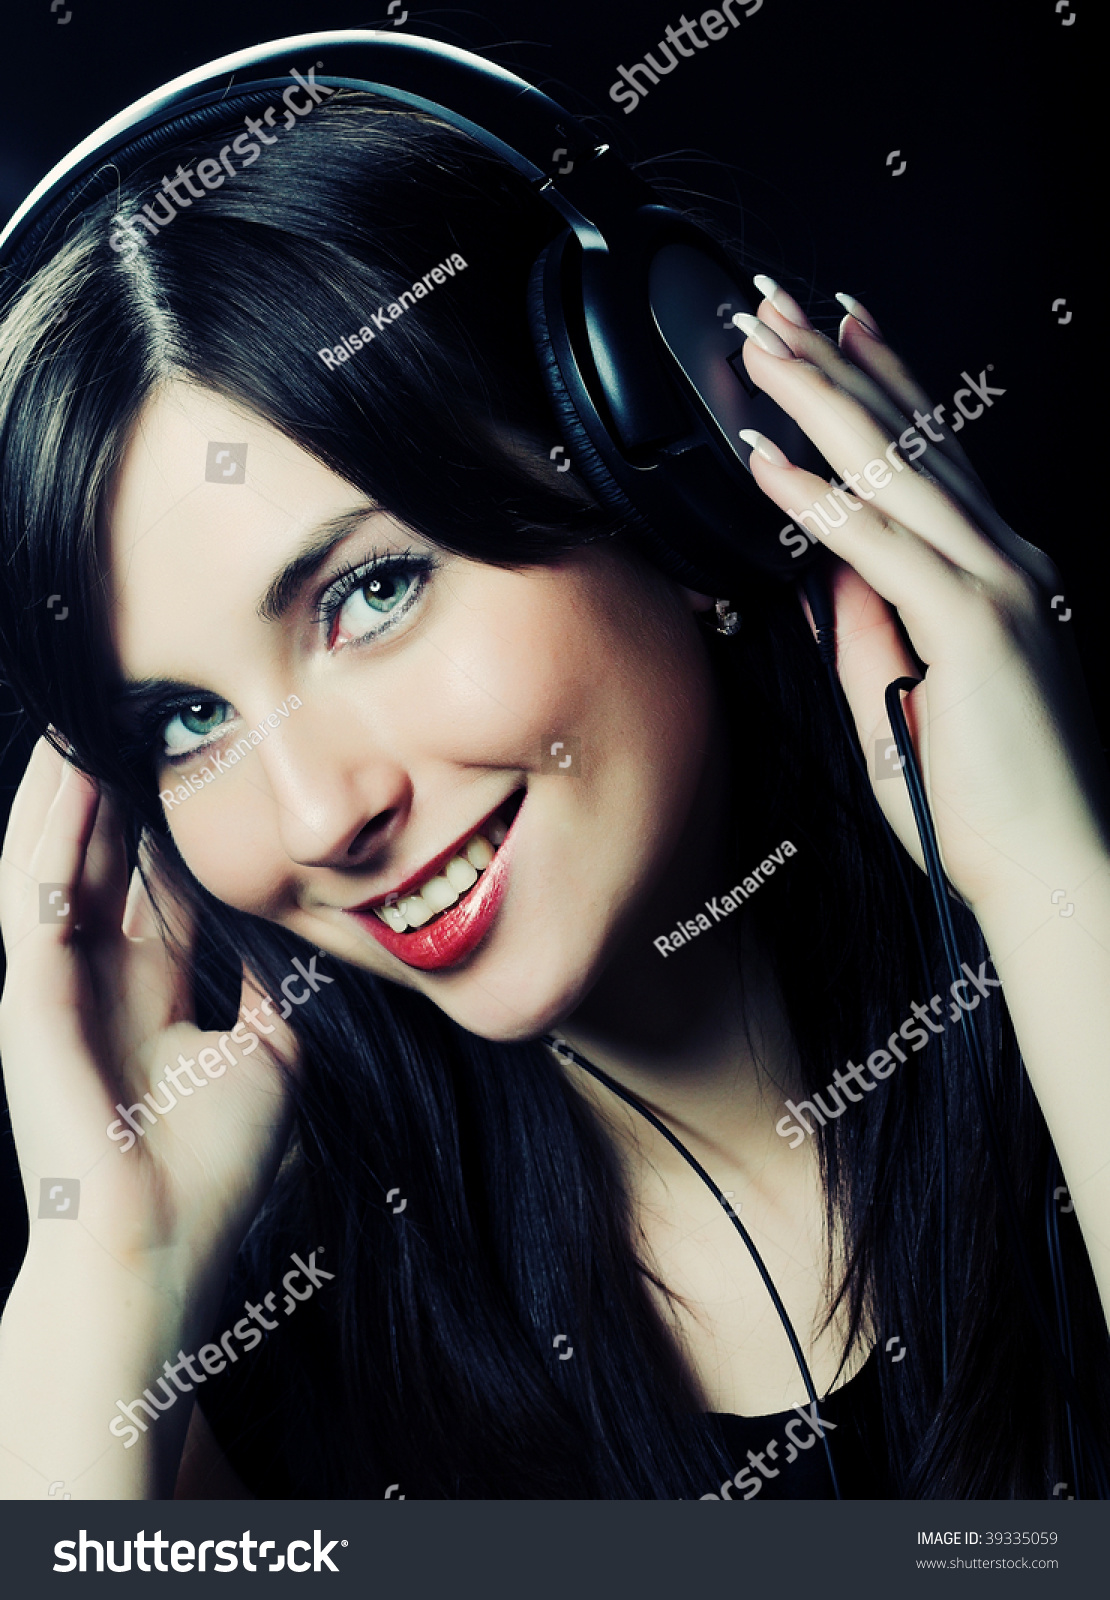 Beautiful Headphones Beautiful Headphones Girl Stock Photo 39335059 Shutterstock